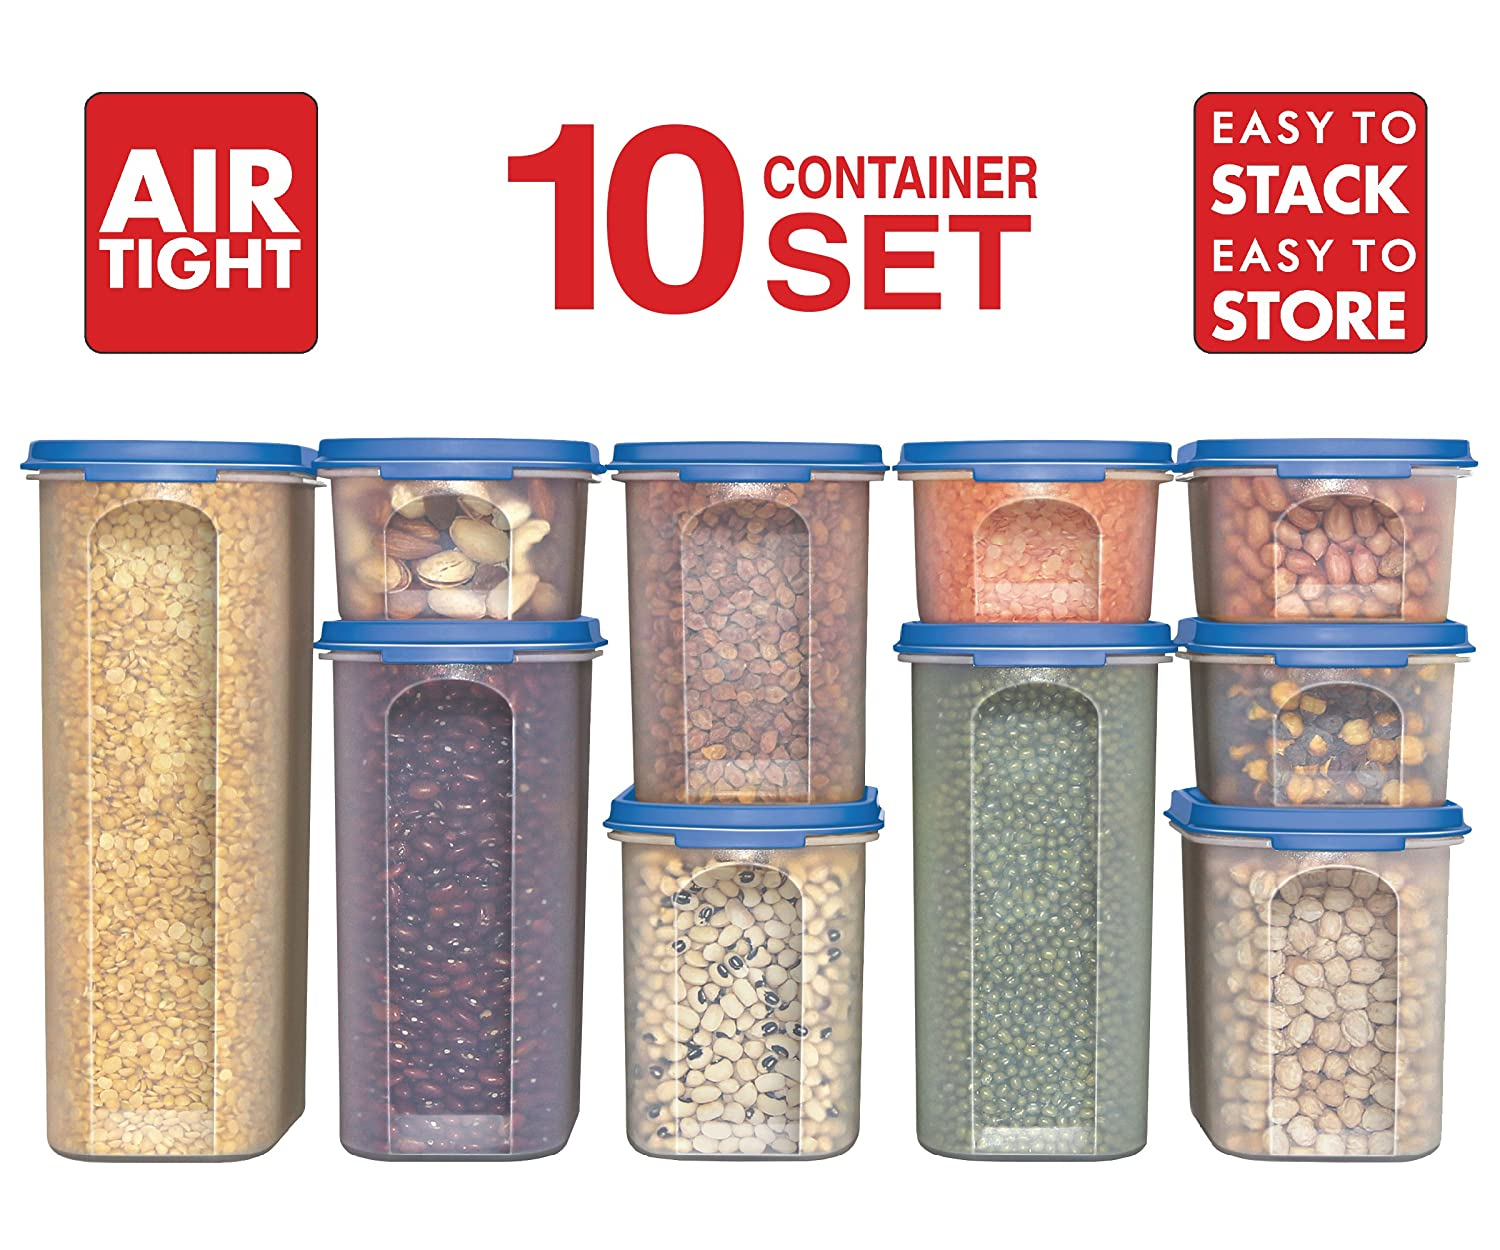 Pantry Food Storage Containers: Food Storage Containers 20 Piece Set Airtight Dry Lids